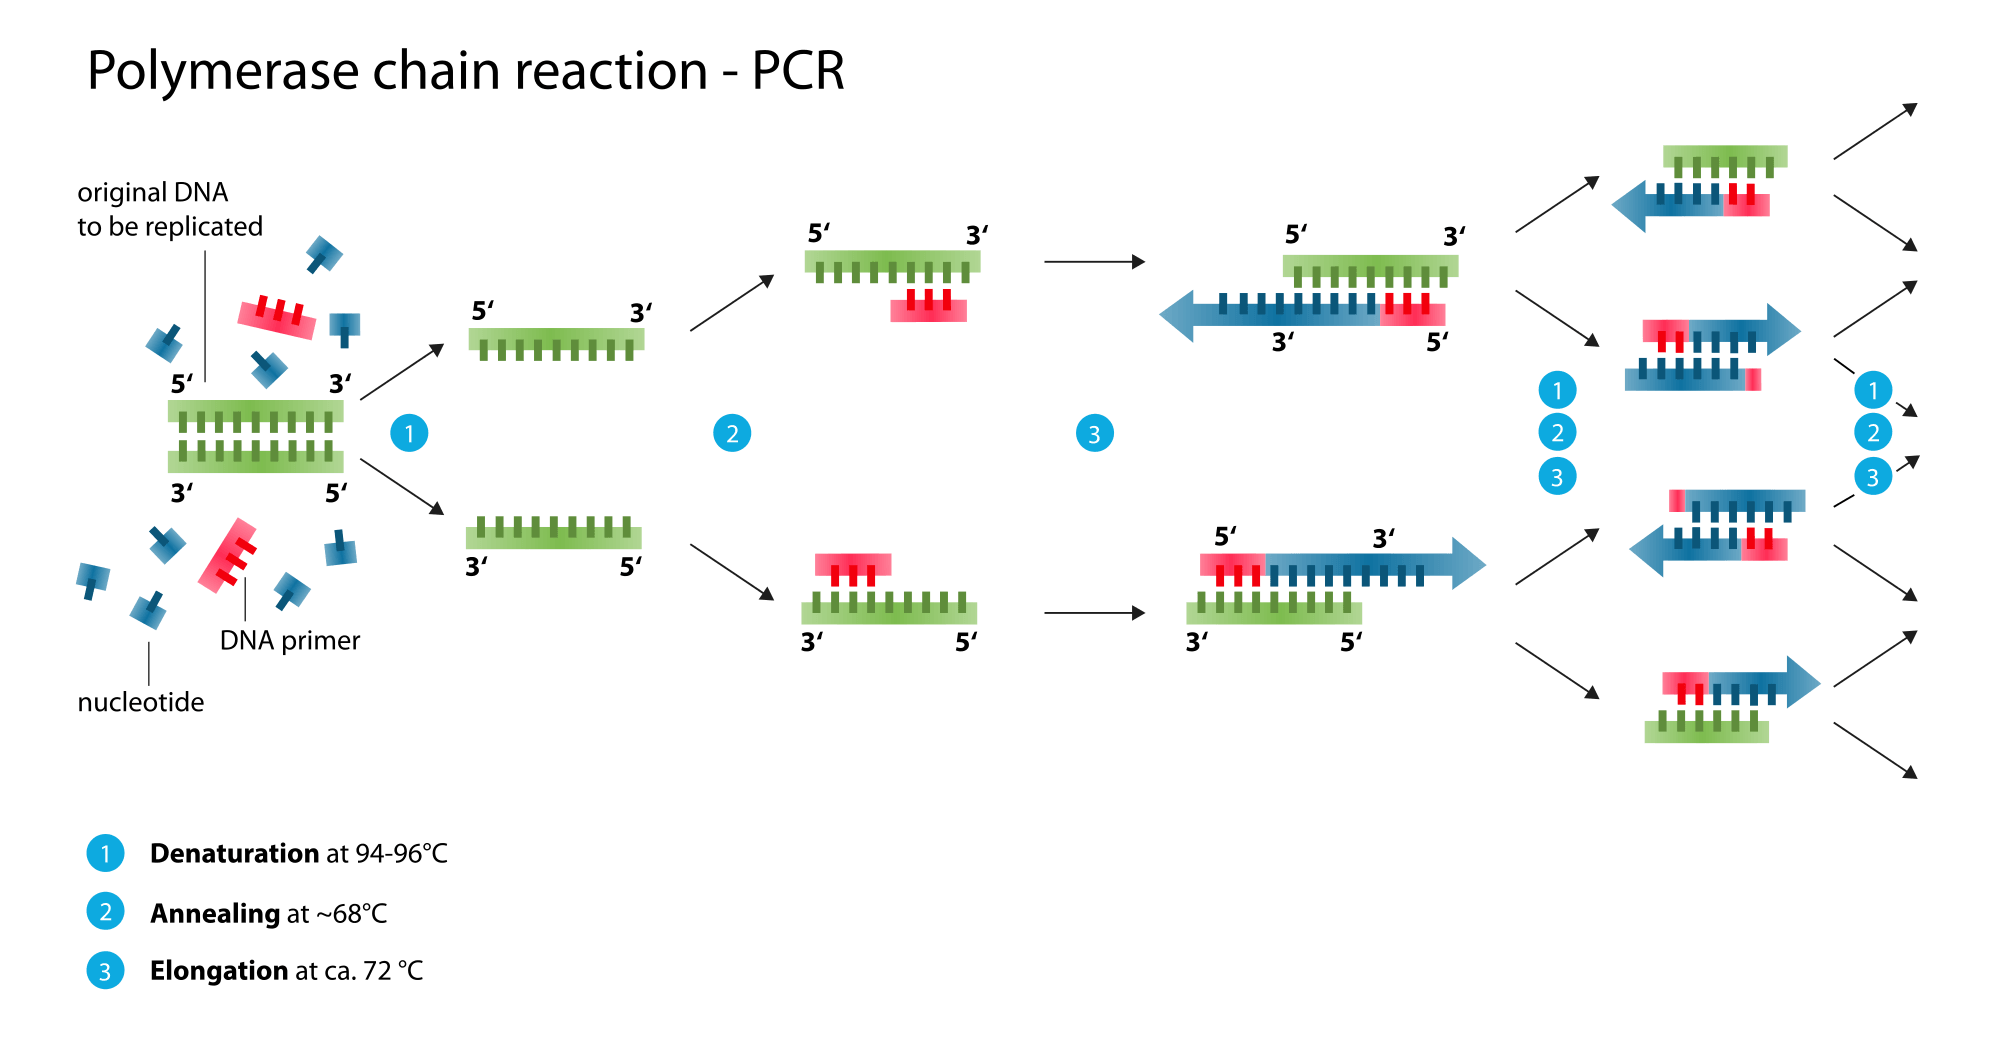 Polymerase Chain Reaction SimpleMed